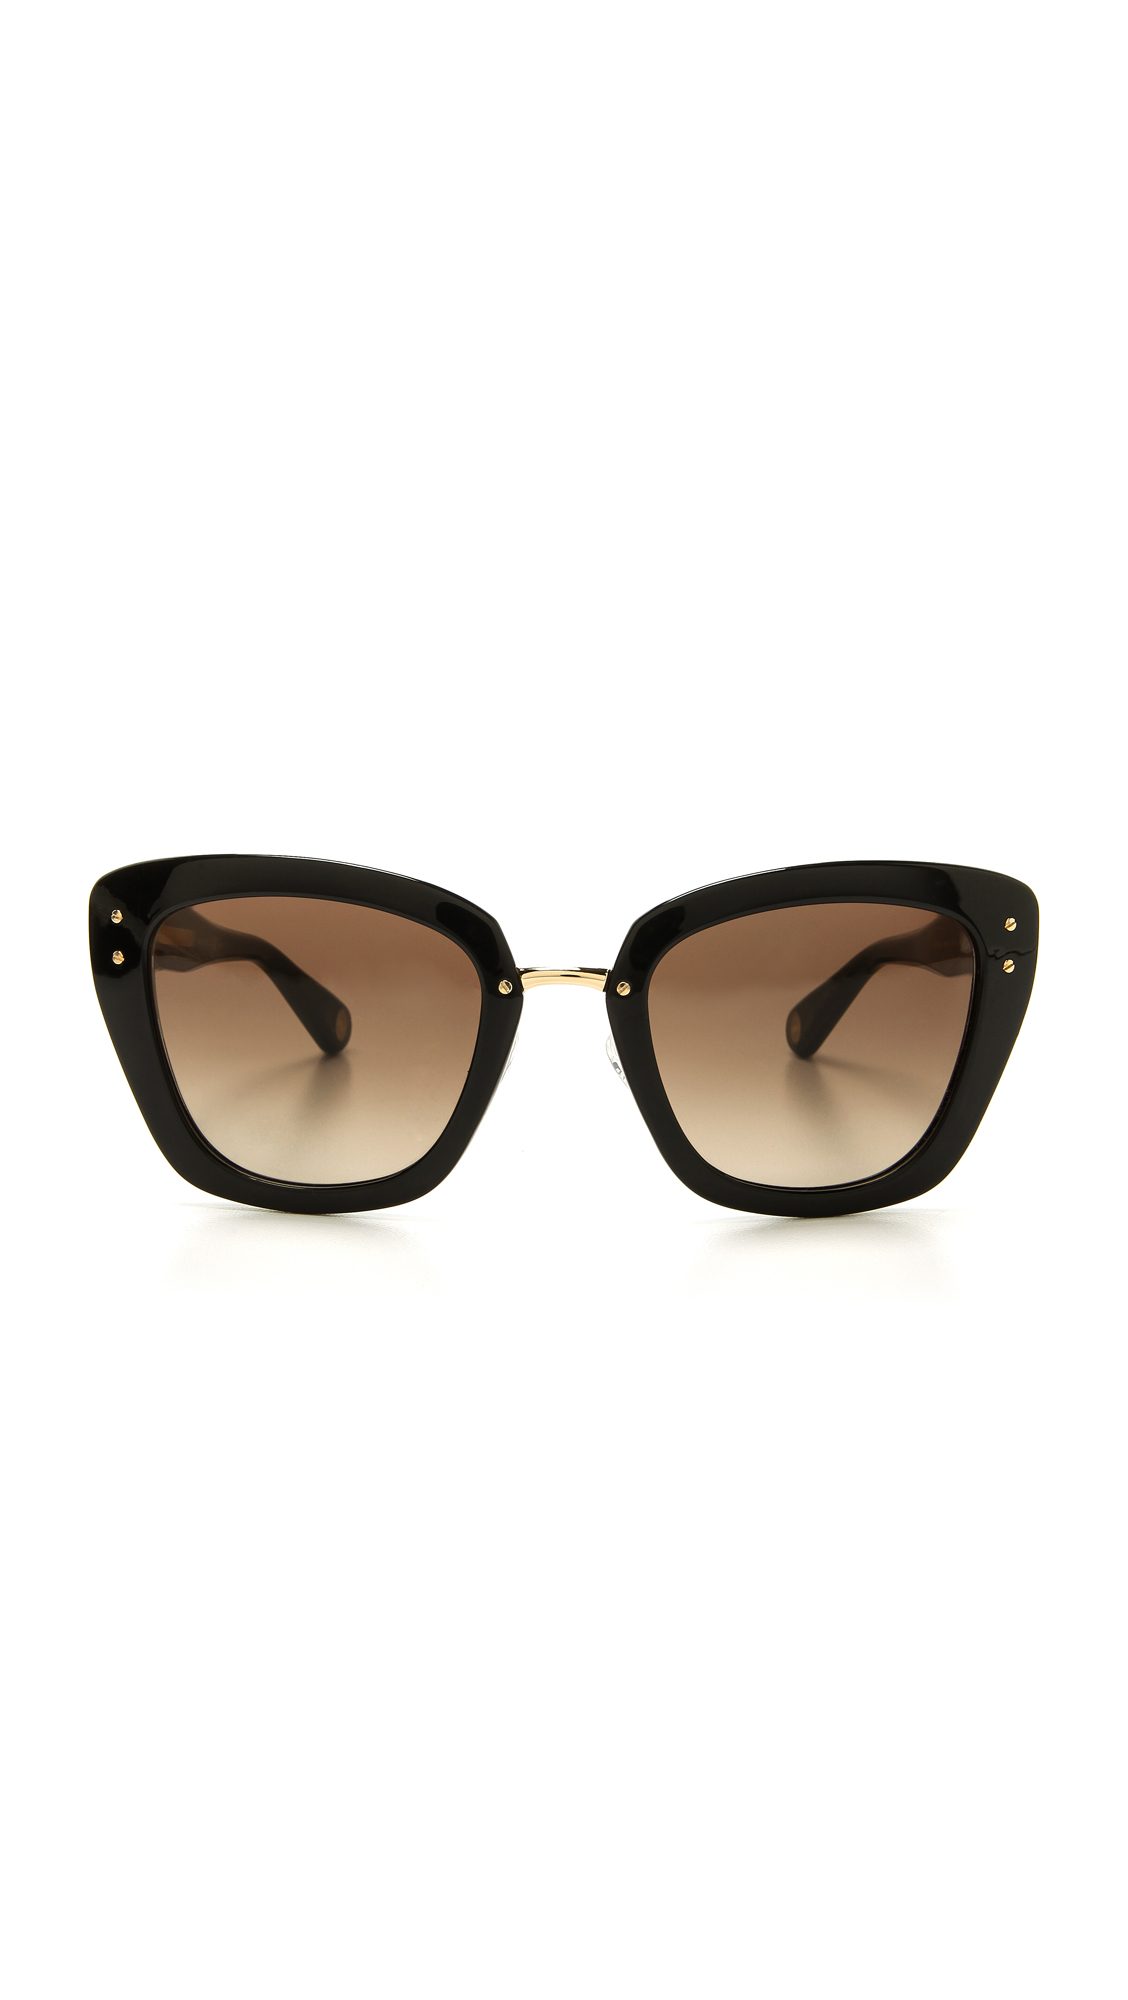 Marc Jacobs Gold Frame Sunglasses : Marc jacobs Thick Frame Sunglasses - Gold/Black/Brown ...